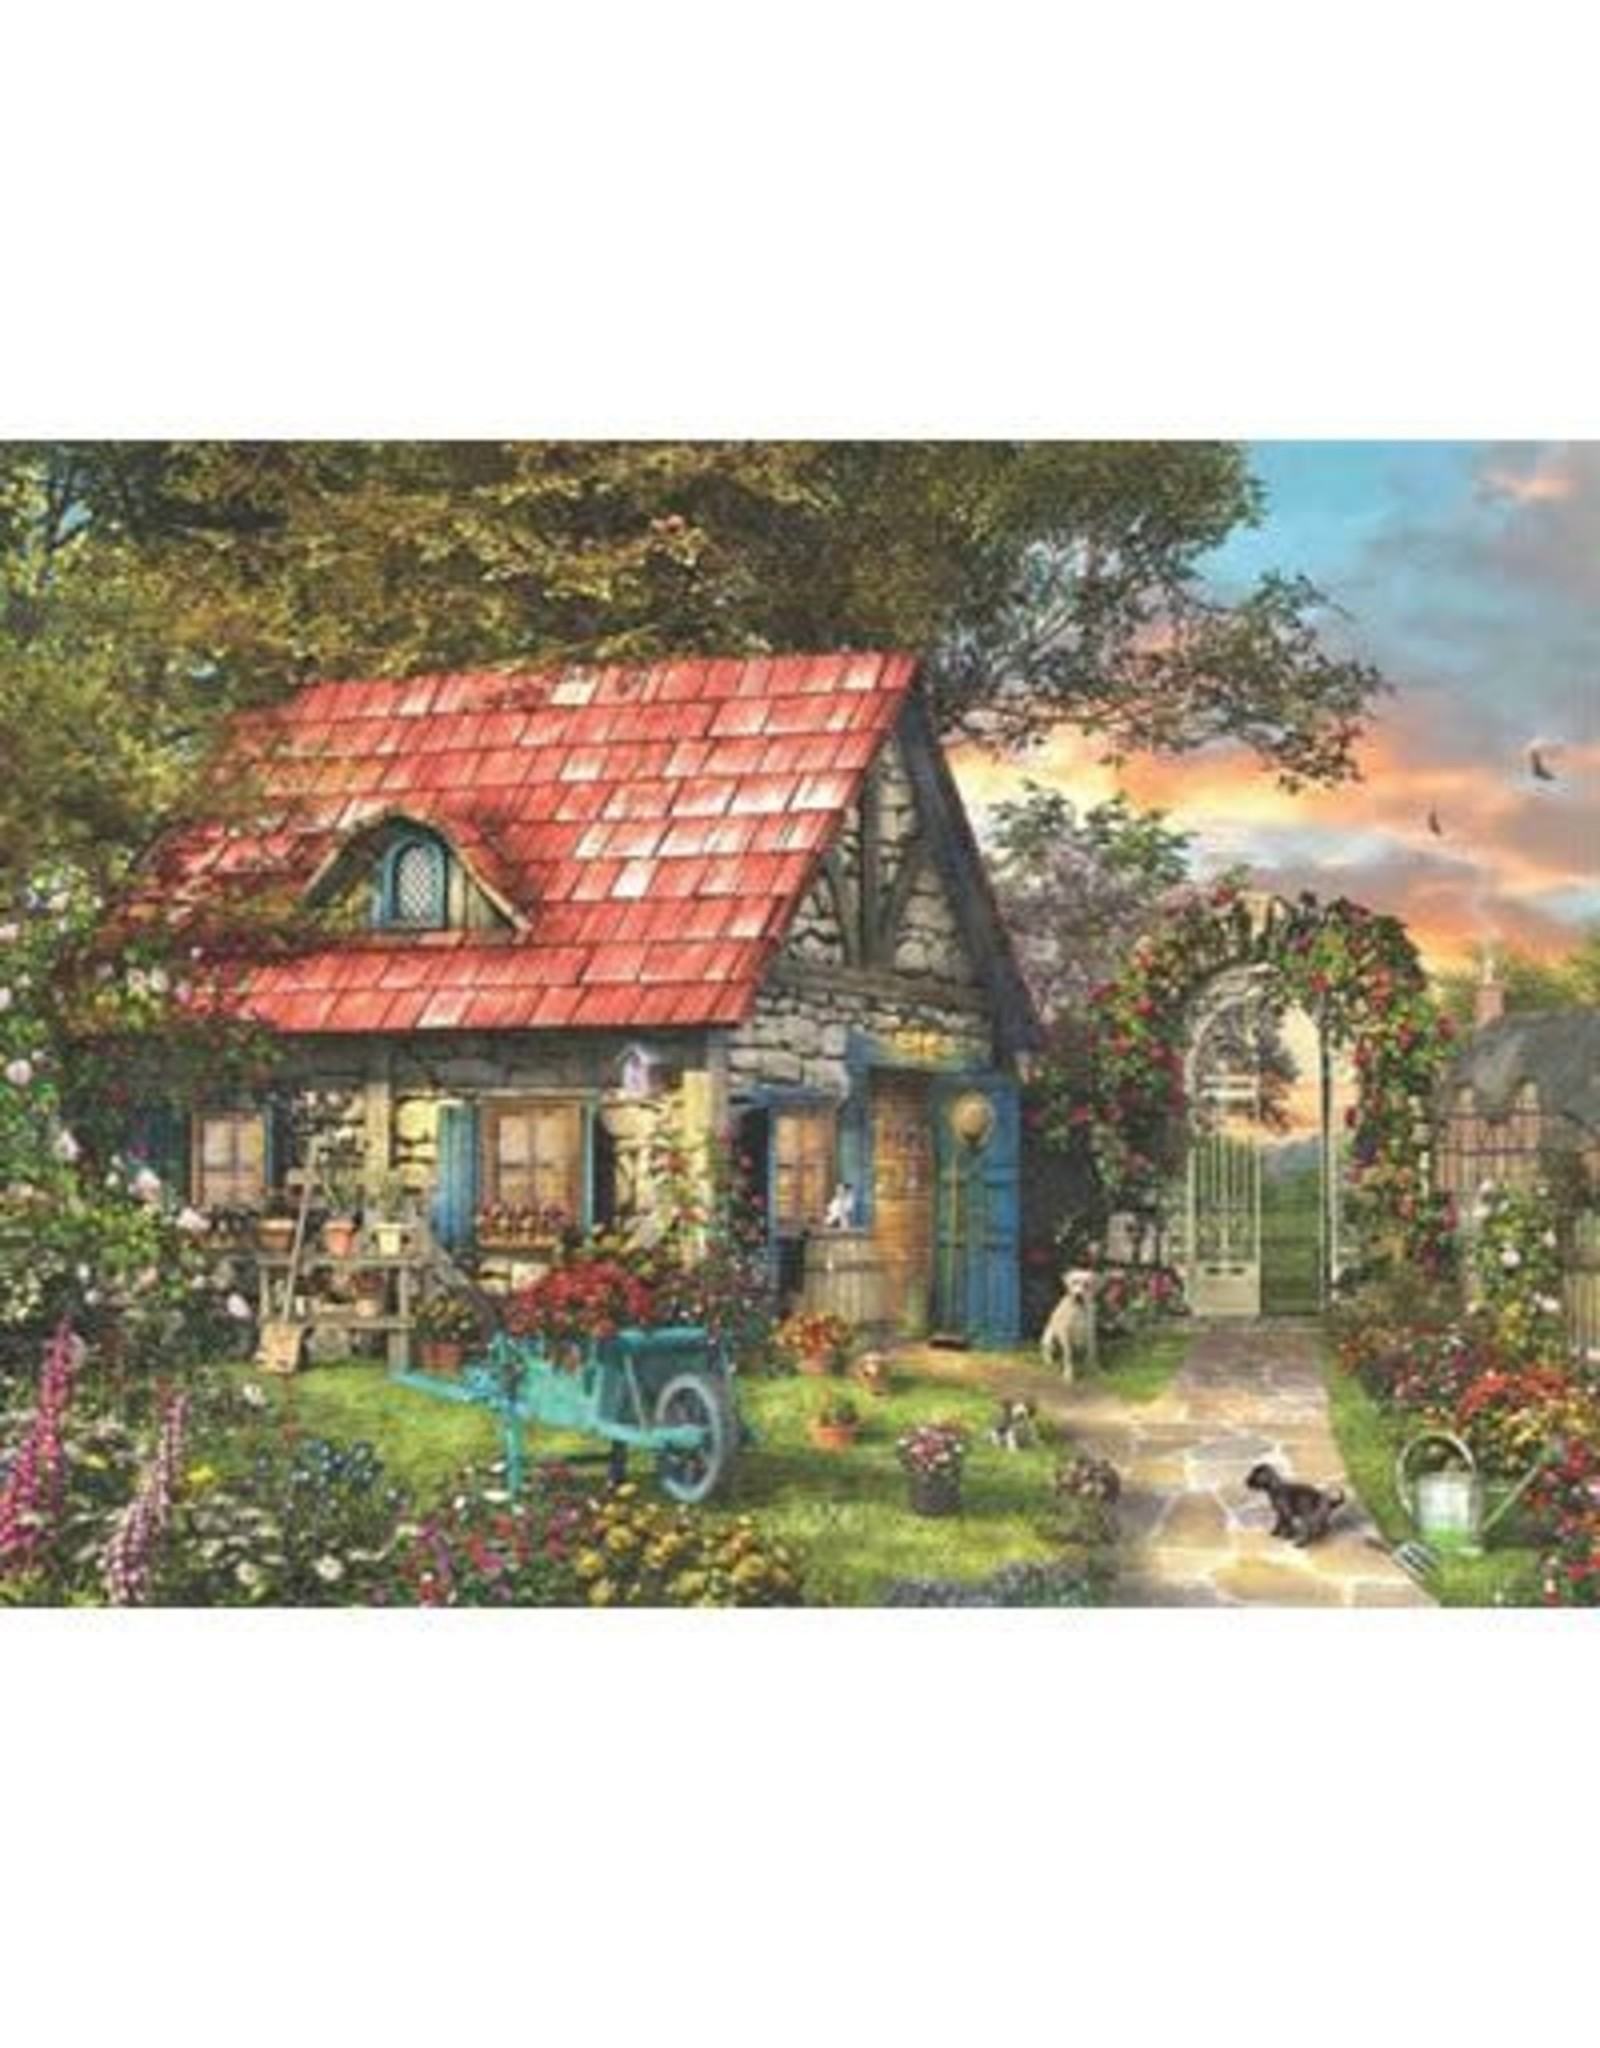 Anatolian 1000PC PUZZLE - COUNTRY SHED